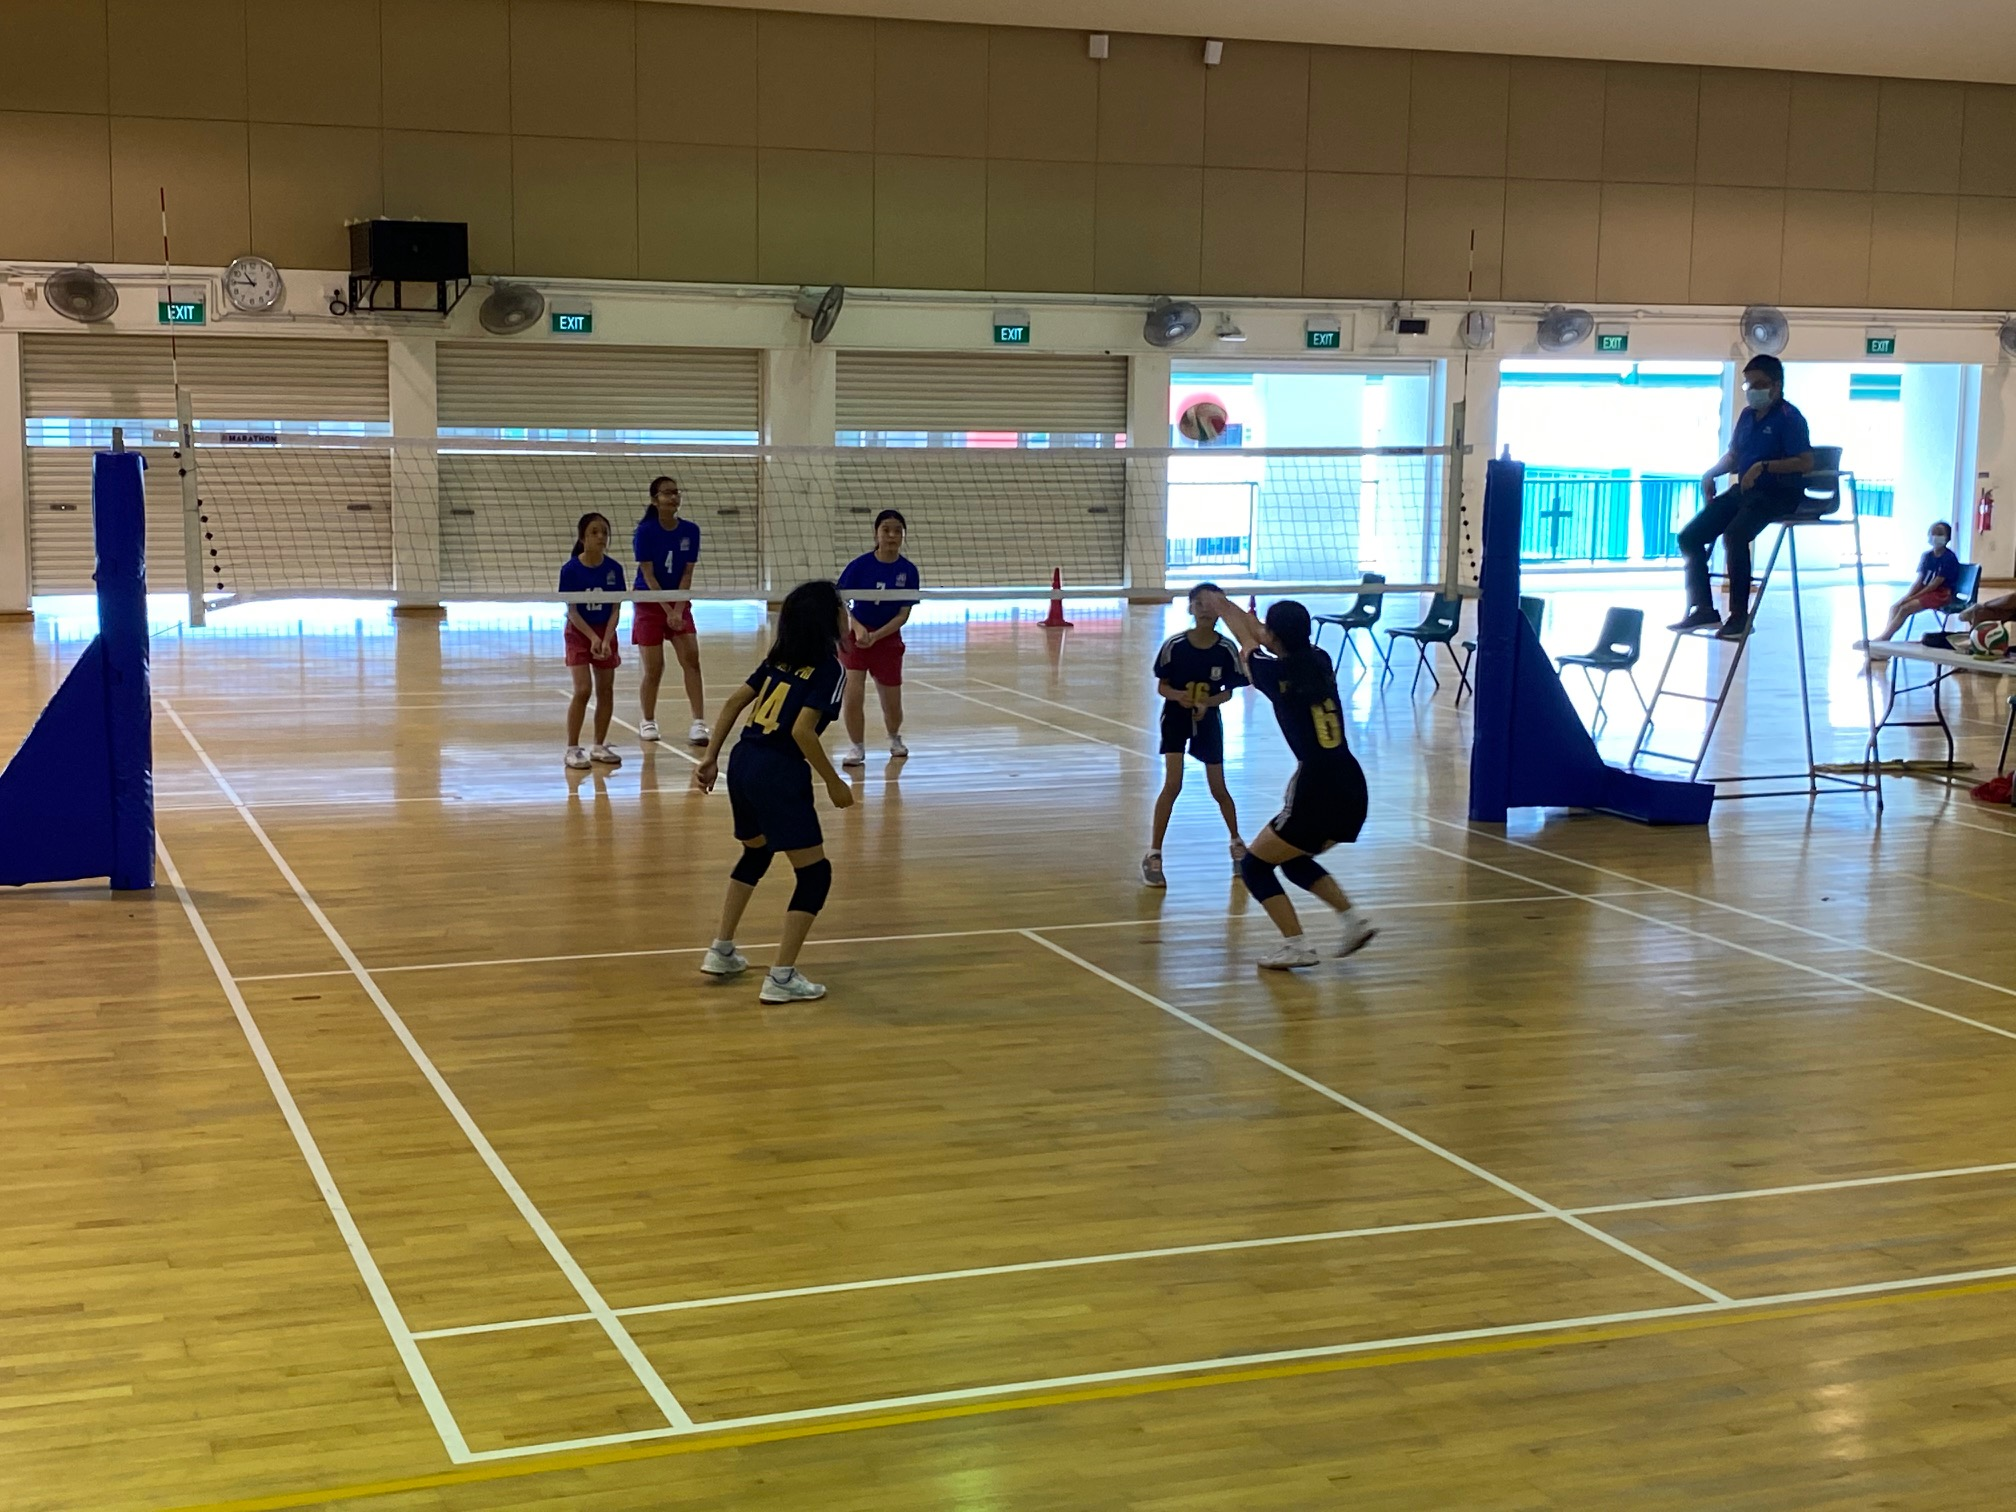 Yuhua Primary (blue) vs Xinmin Primary (black) at the National School Games Senior Division girls volleyball preliminary stage (2)